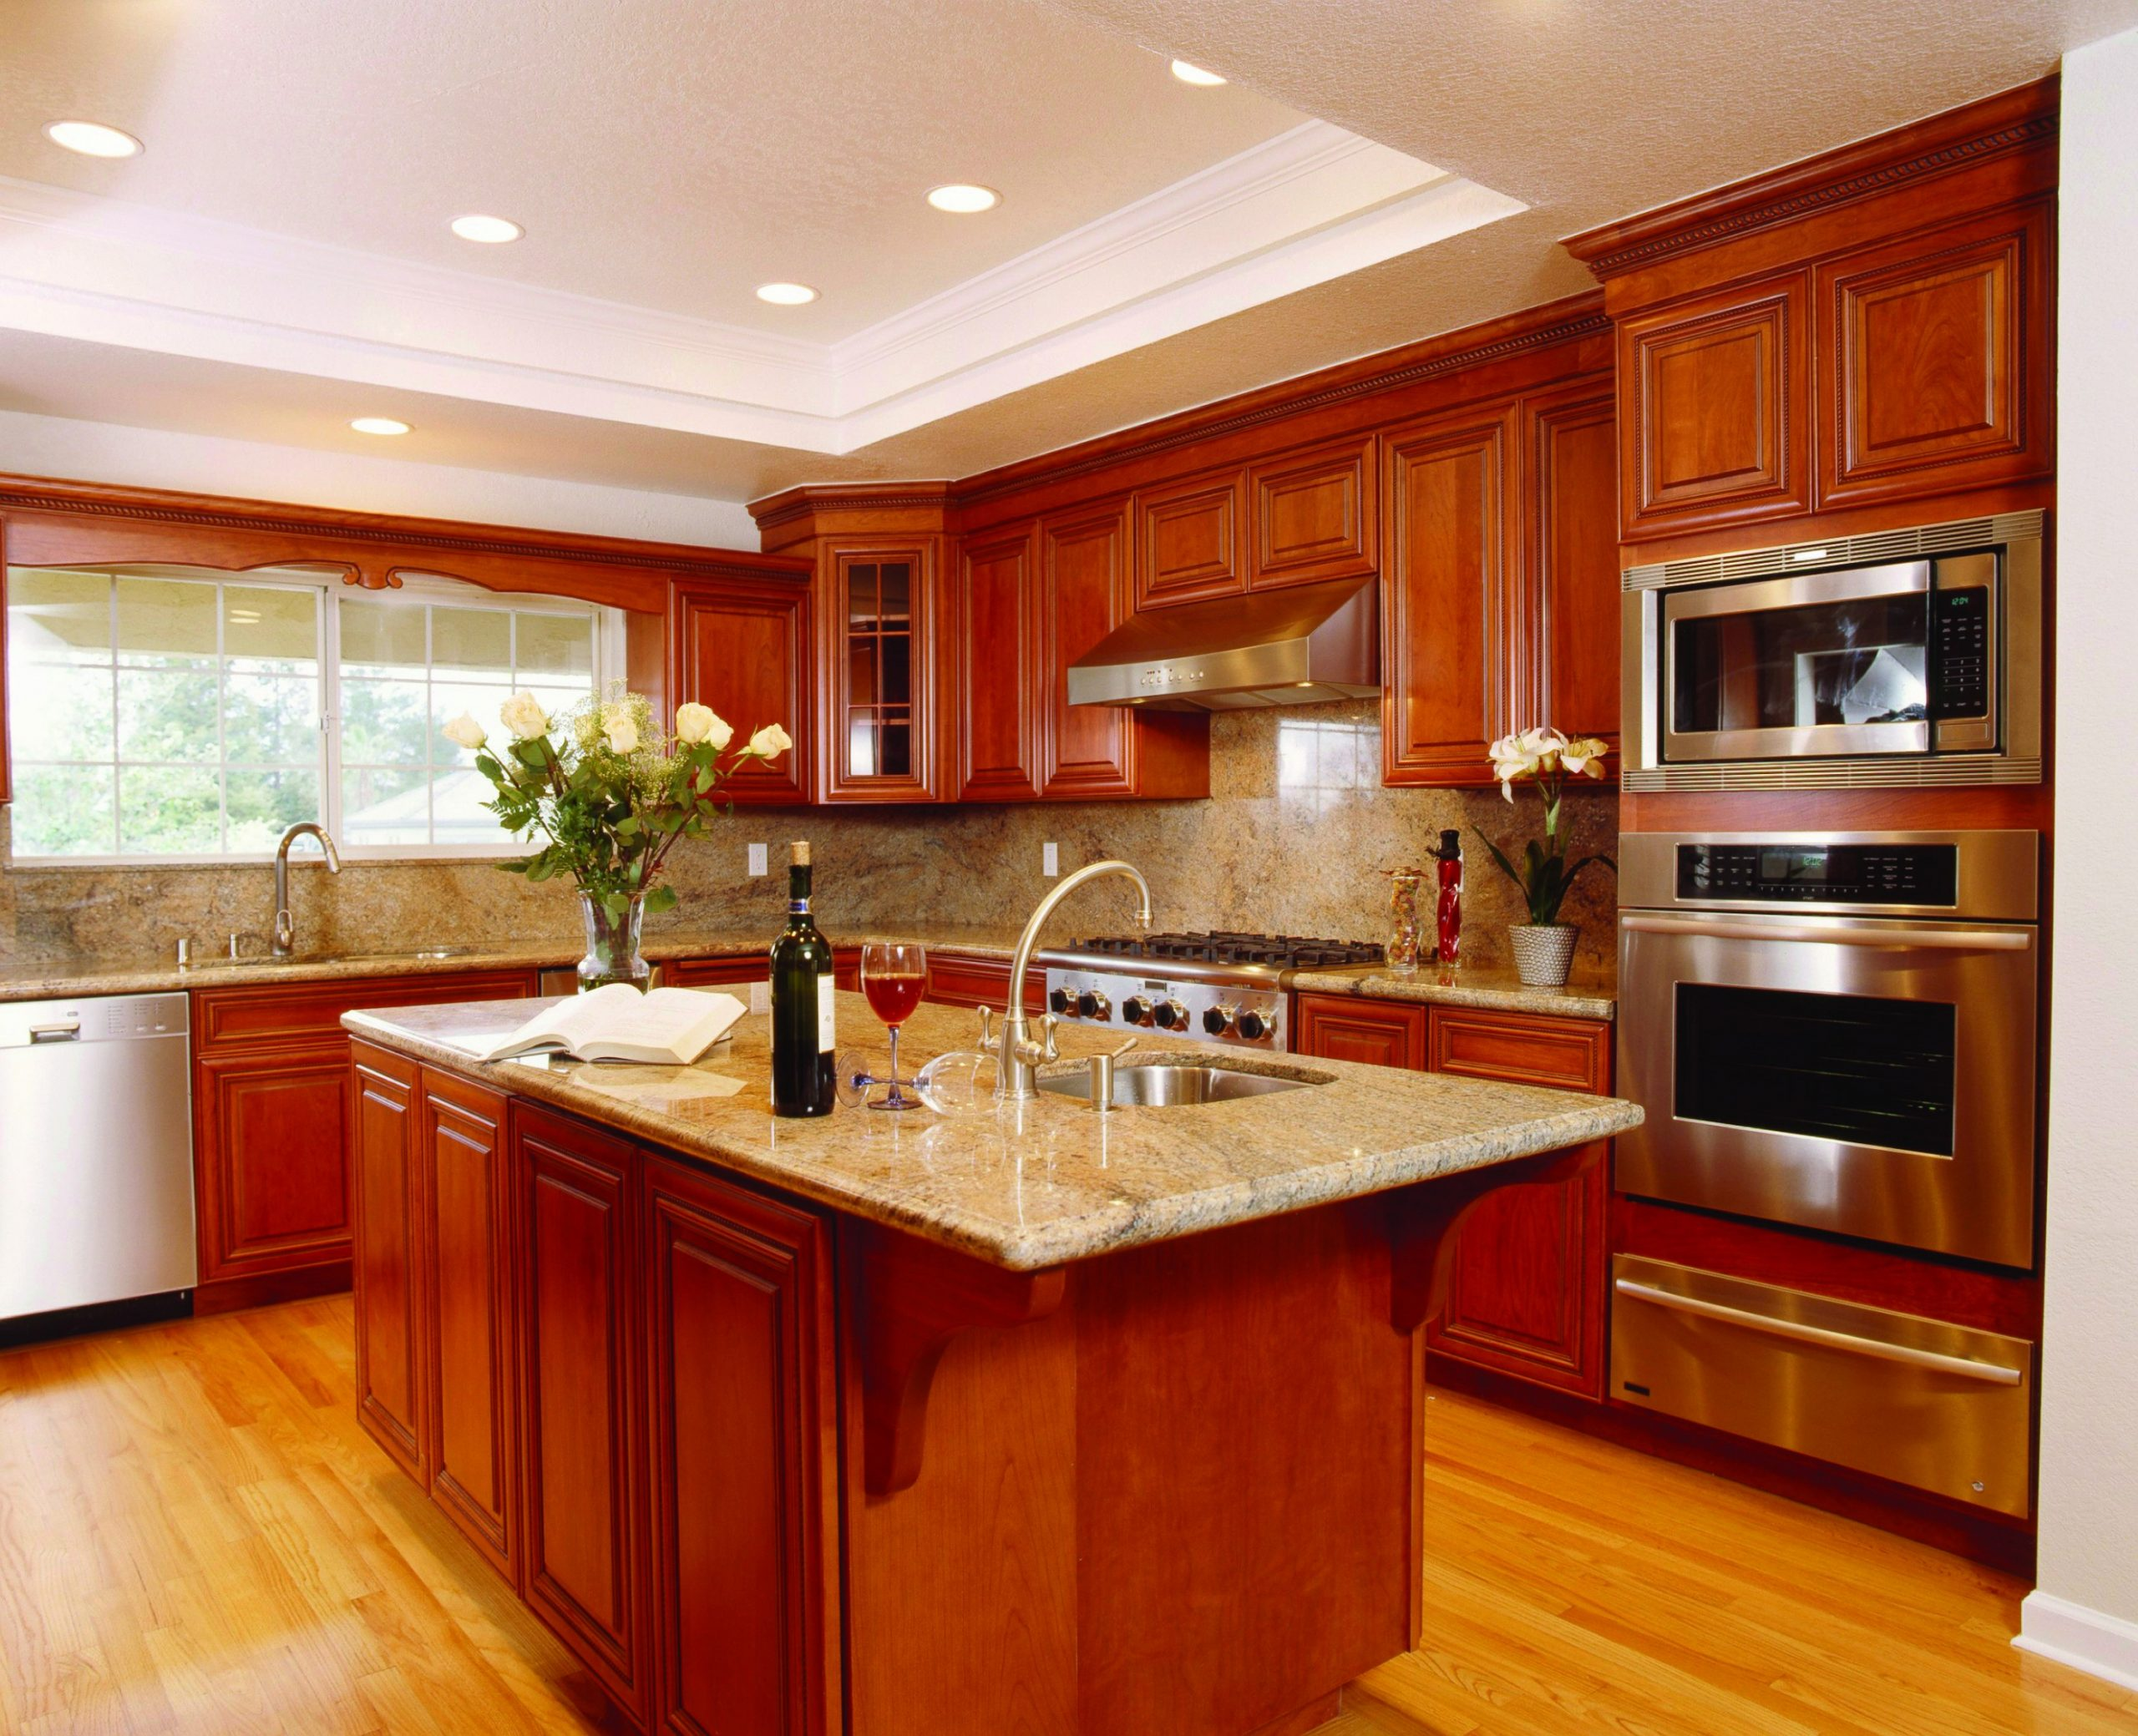 Really nice woodwork and cabinets: Kitchen Rejuvenation #12  - New Yorker Kitchen Cabinets